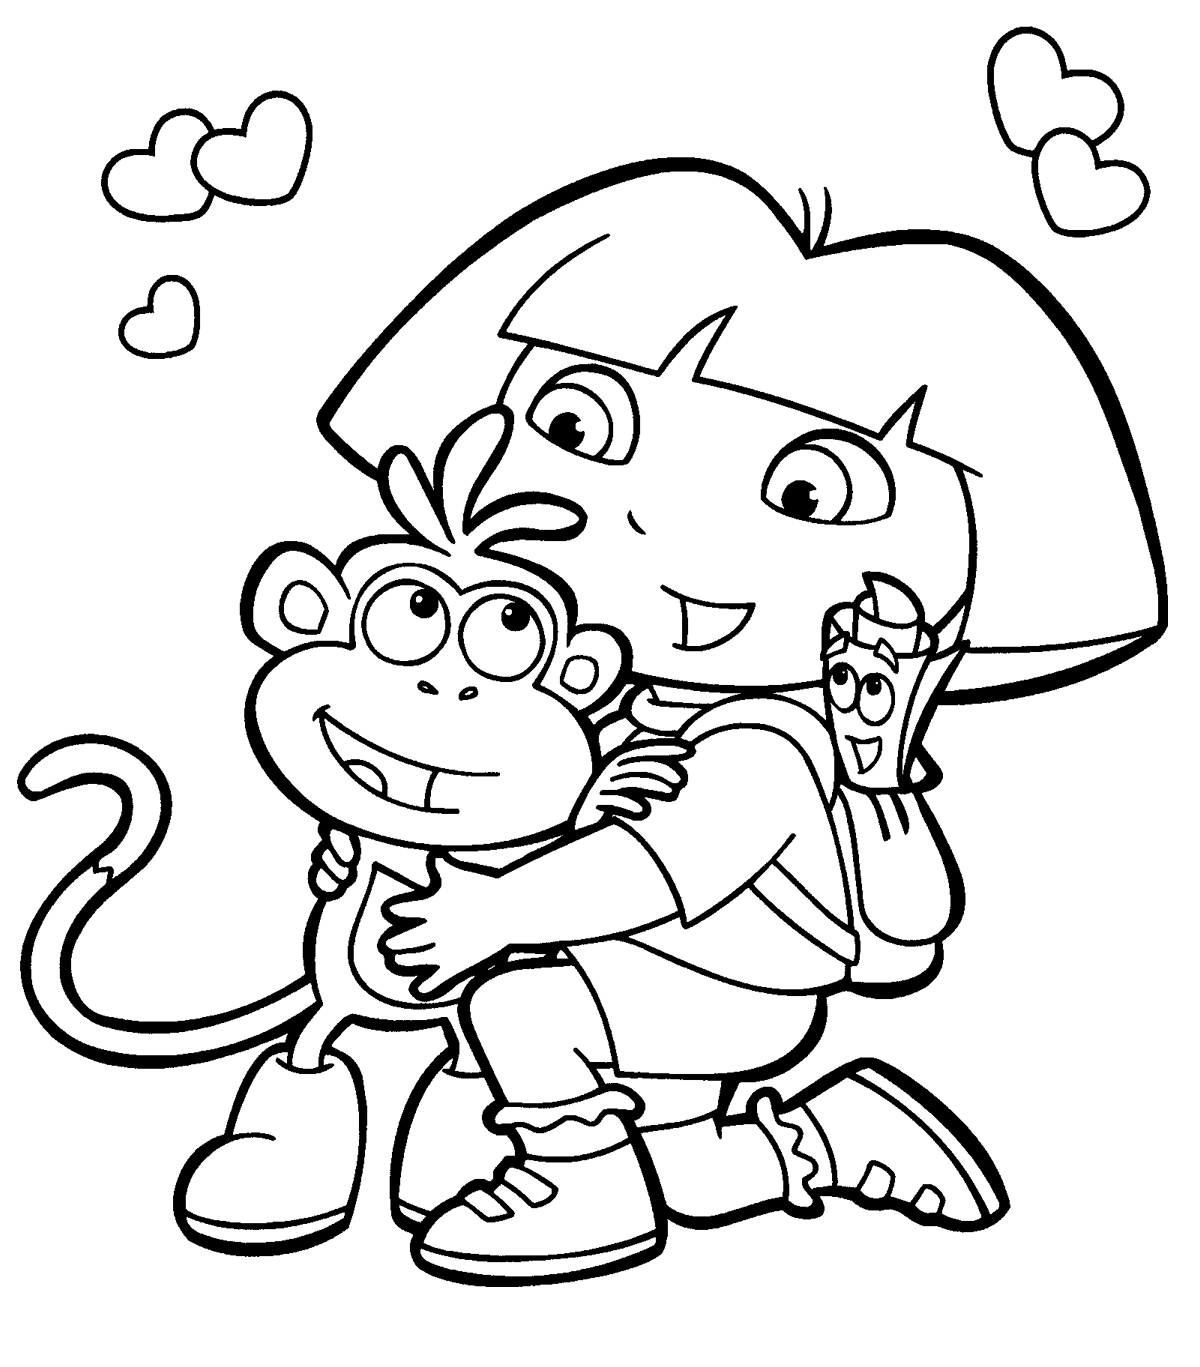 free printable dora coloring pages print download dora coloring pages to learn new things pages free dora coloring printable